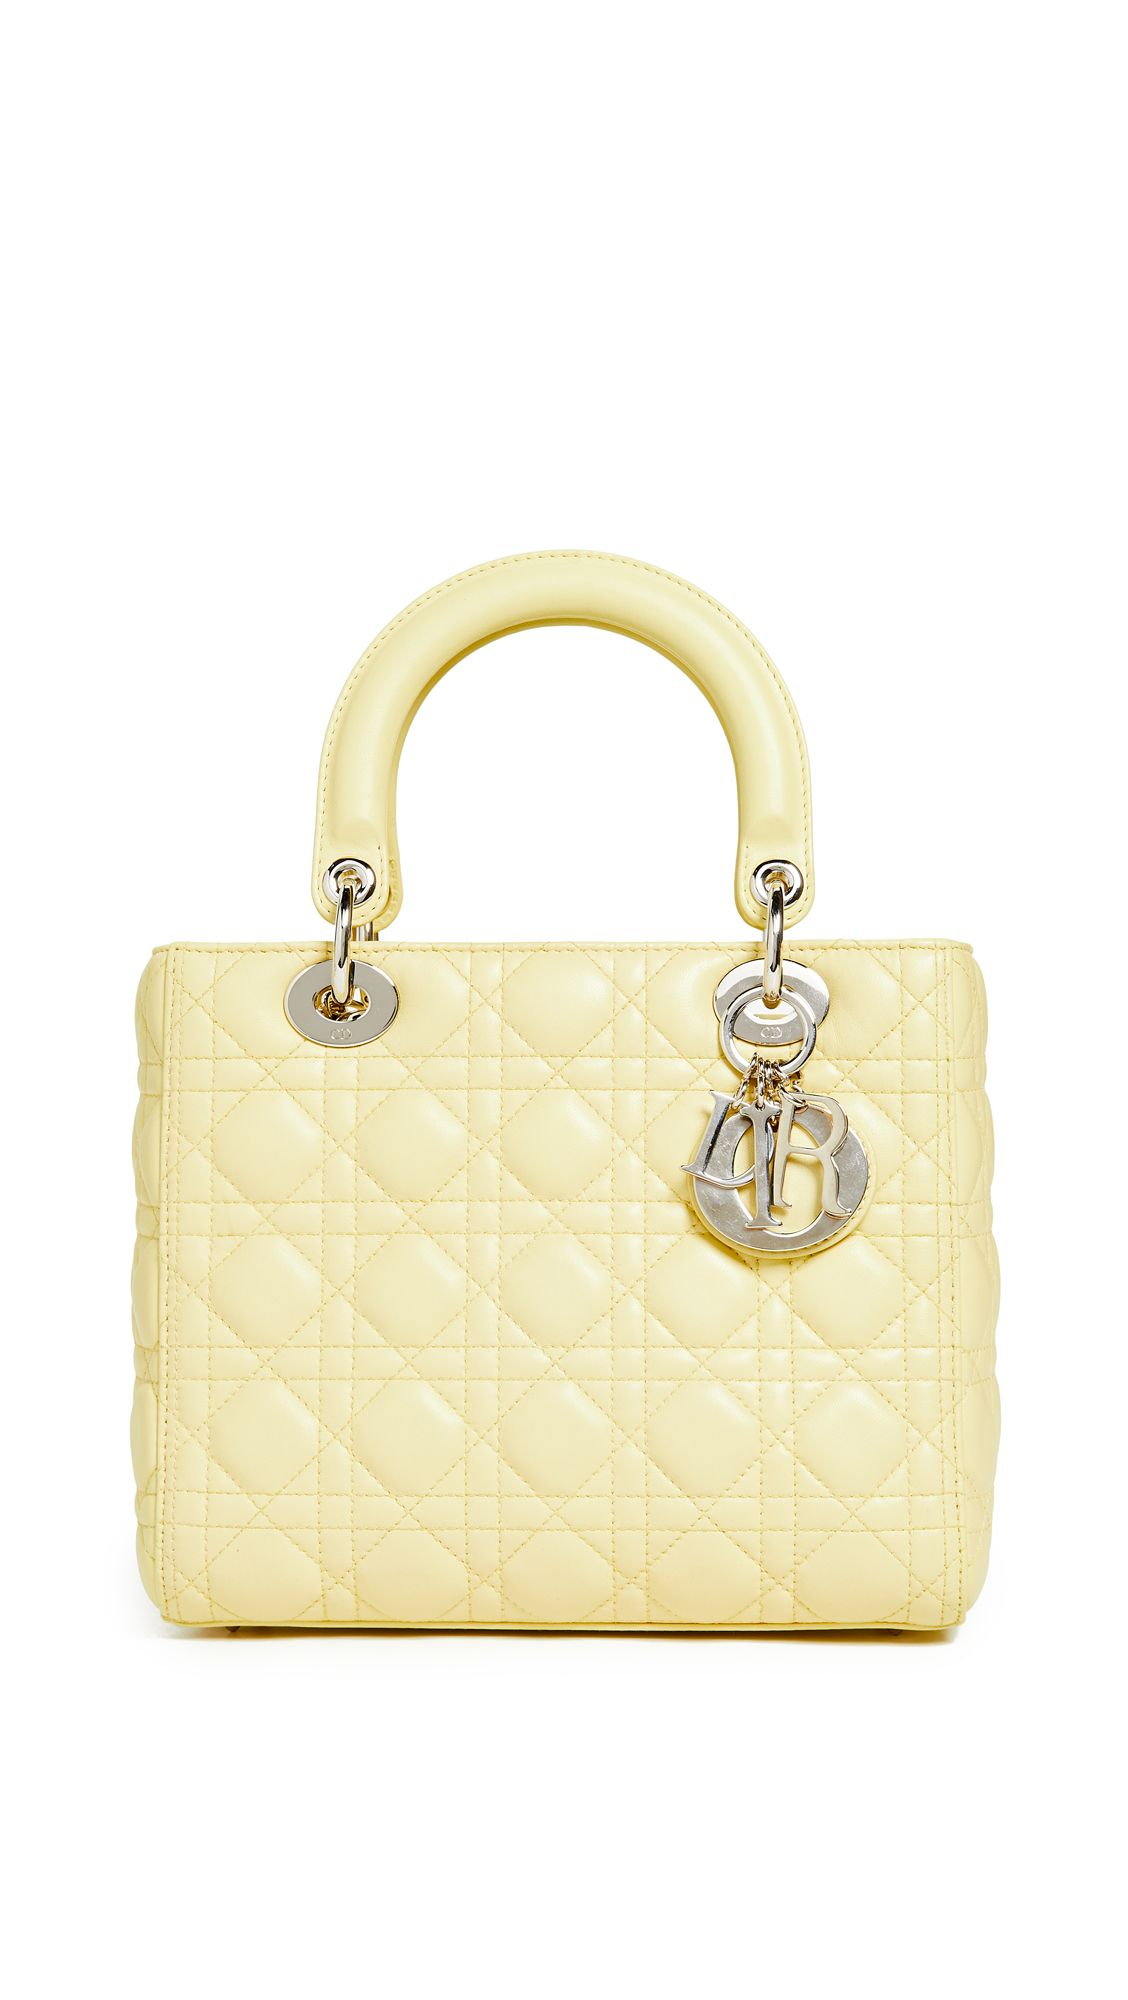 WHAT GOES AROUND COMES AROUND DIOR LAMBSKIN MEDIUM LADY DIOR BAG.   whatgoesaroundcomesaround  bags ad2ee66441ed2